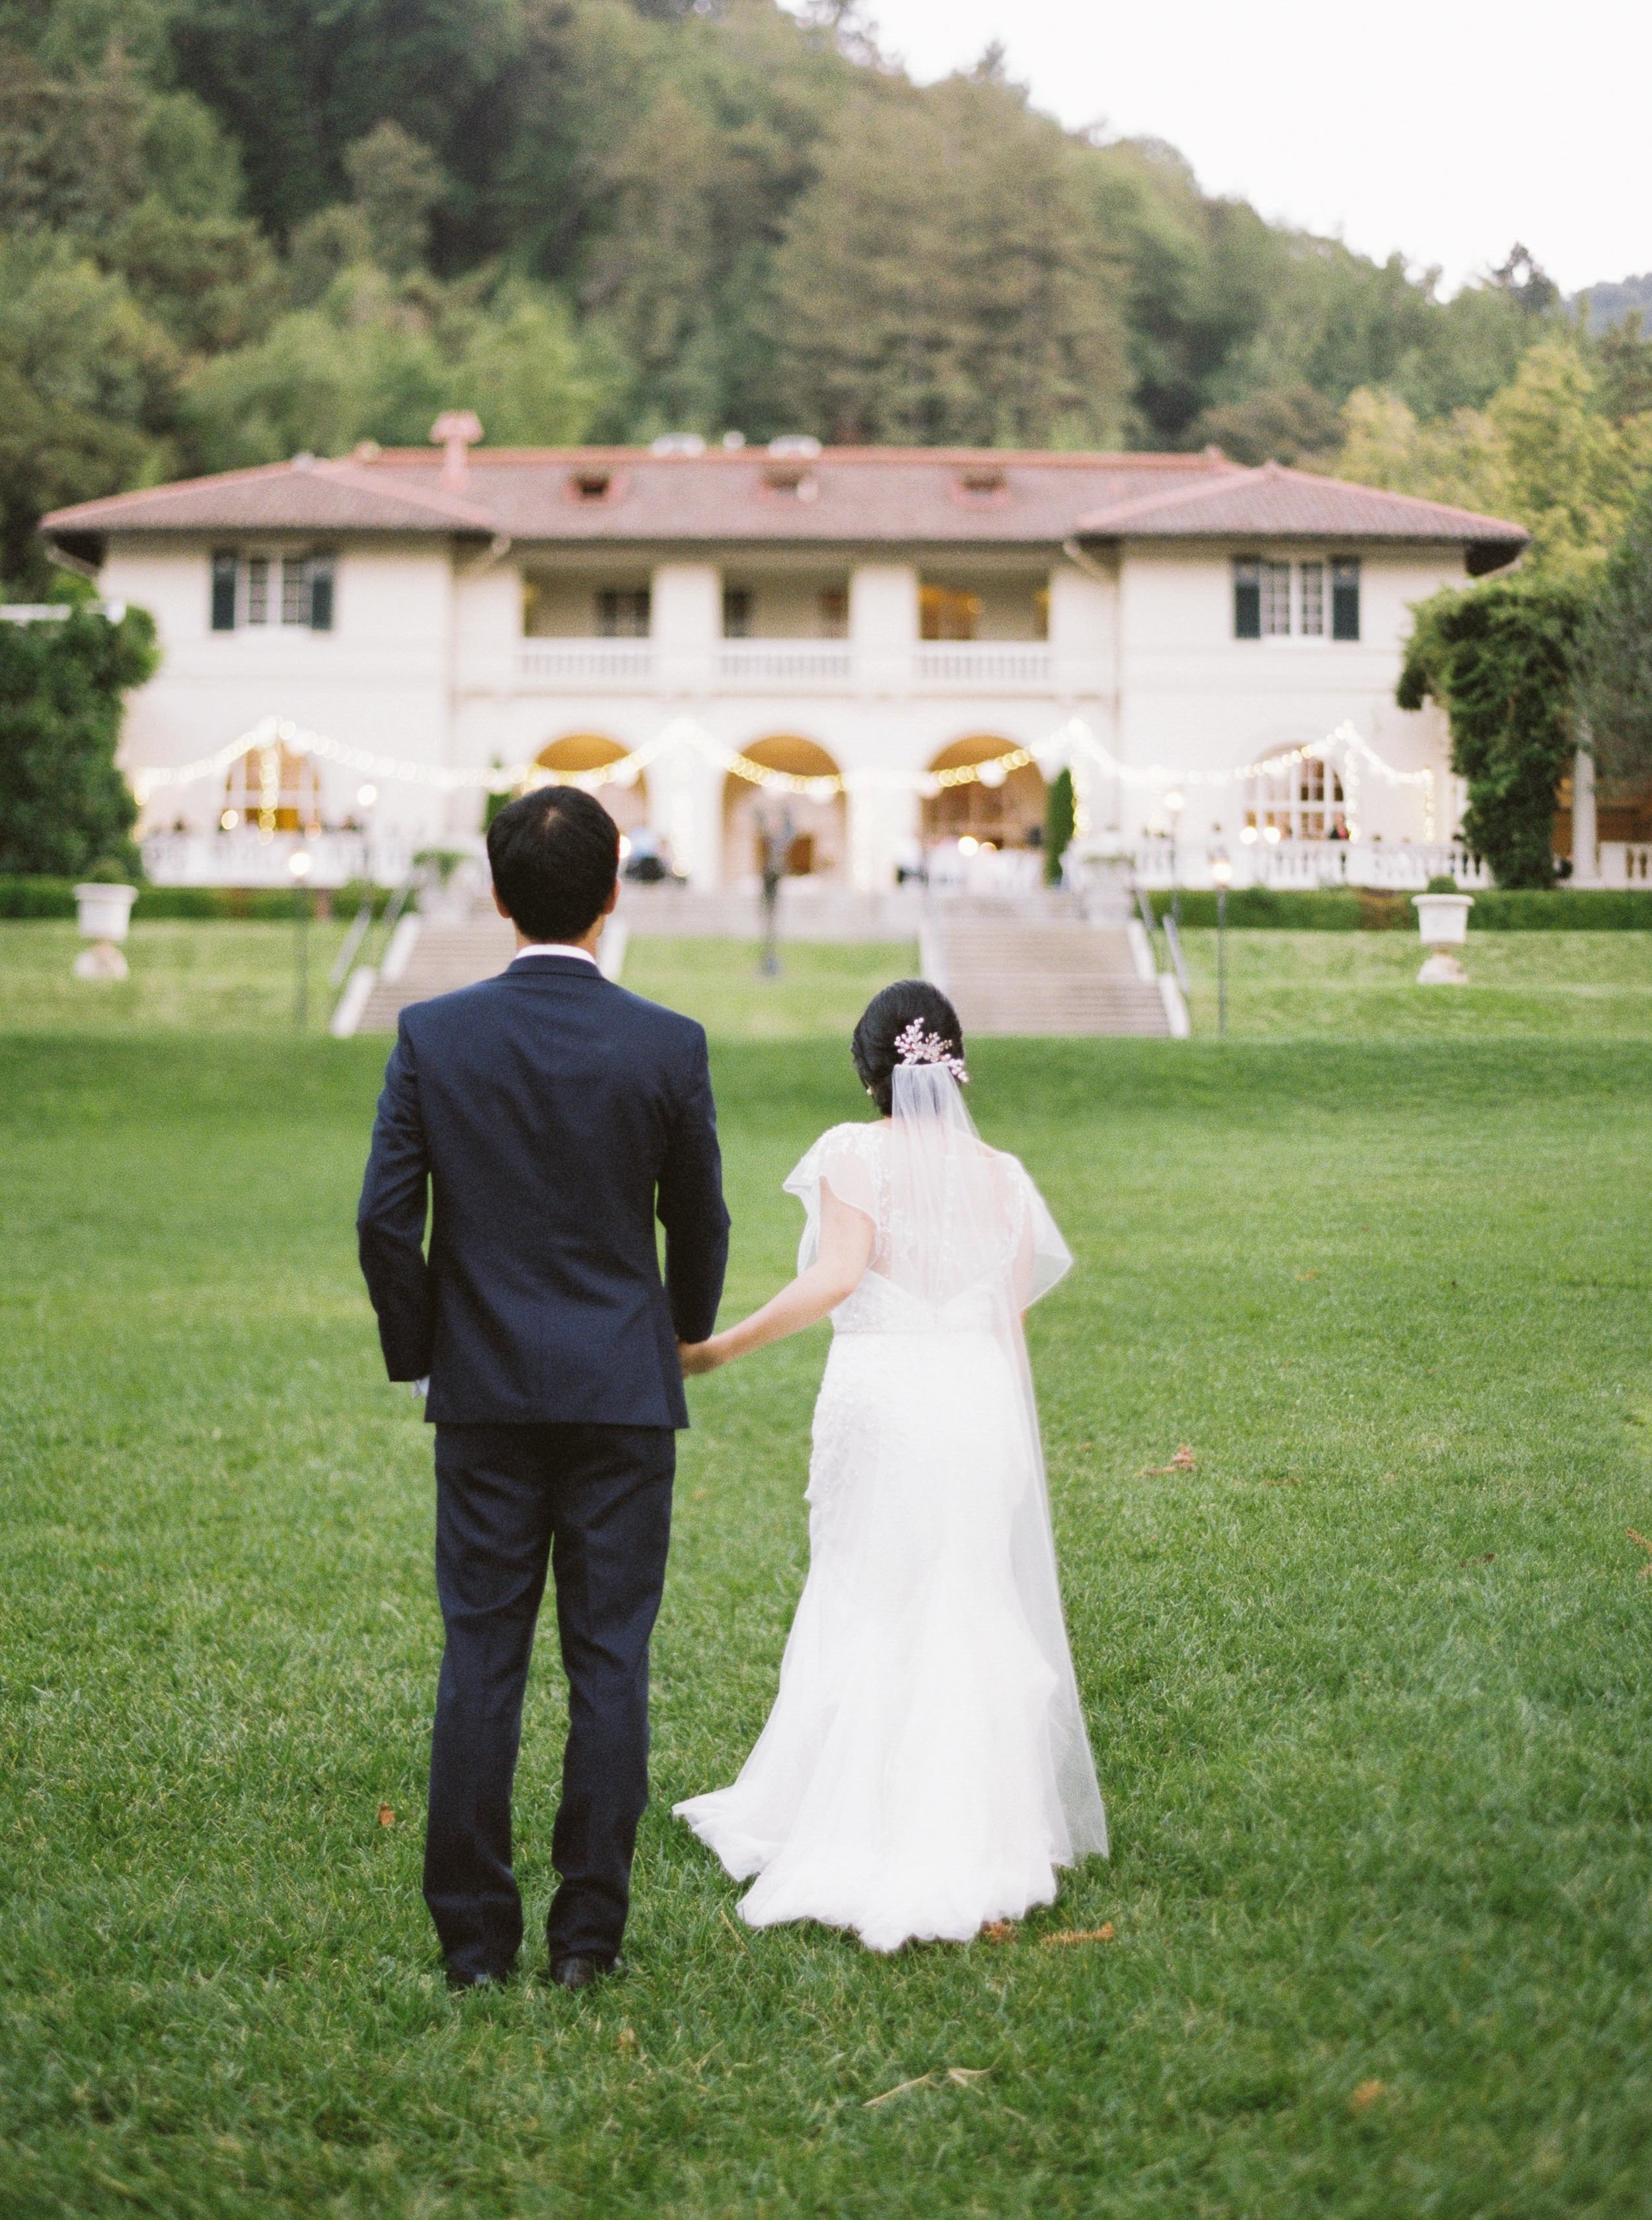 Villa_Montalvo_Wedding_Photographer_Videographer_San_Francisco192.jpg